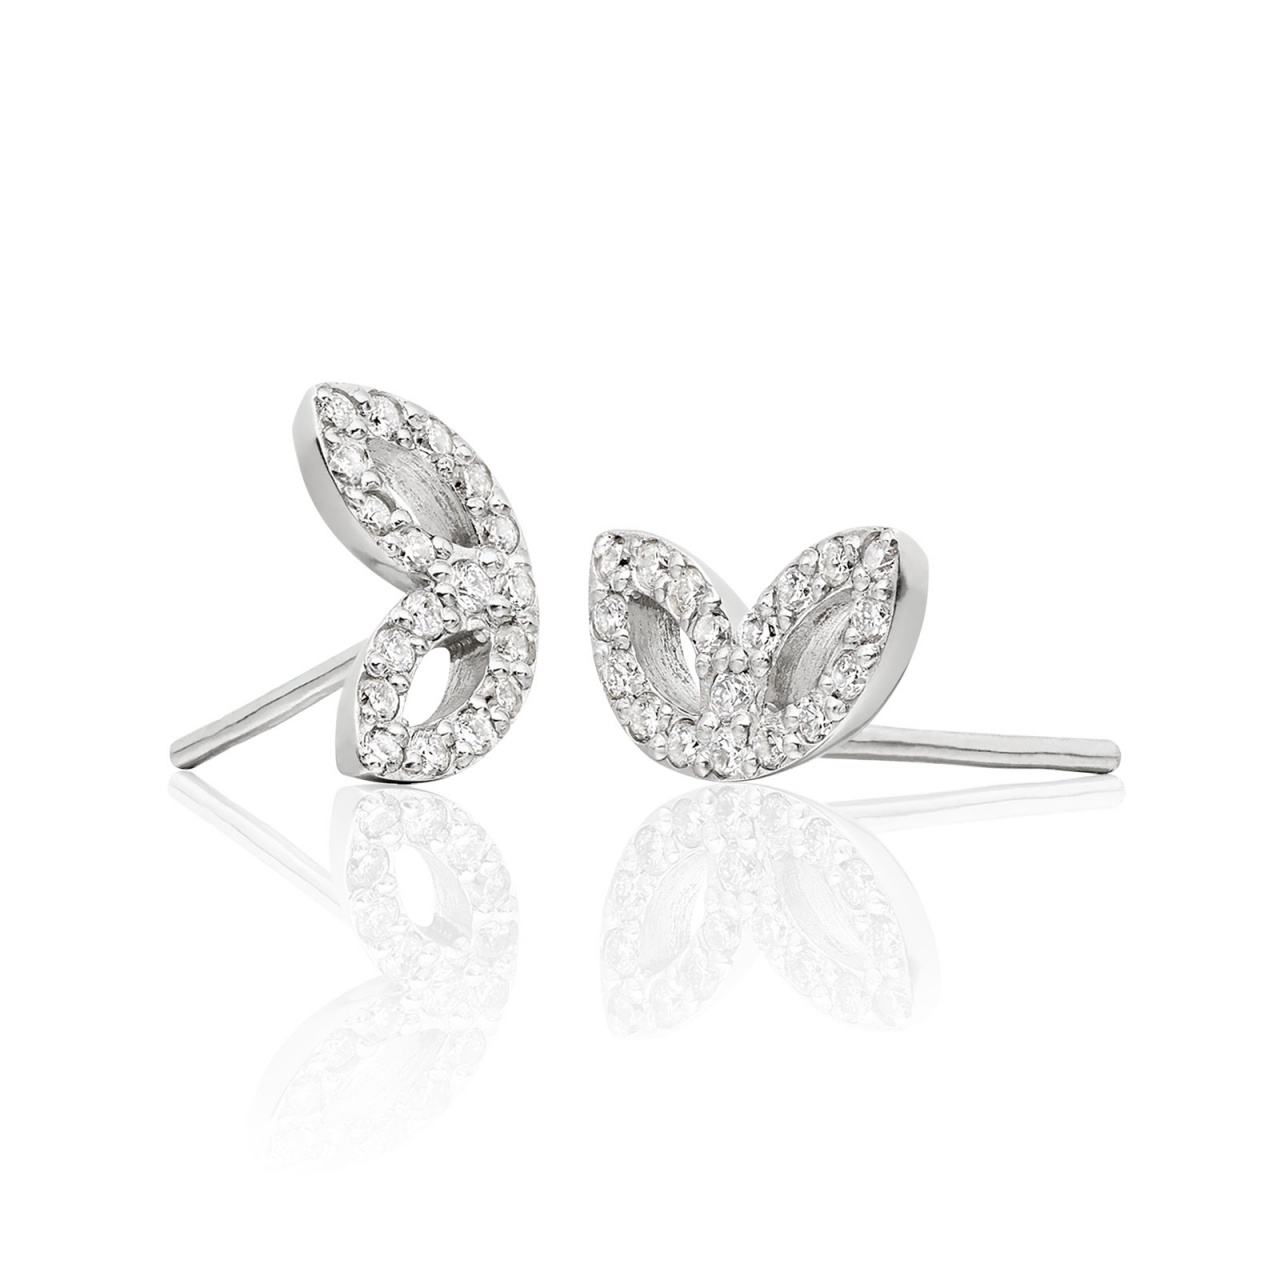 Enchanted Diamond Studs in White Gold with Tahitian Pearls-TEGRWG0486-1